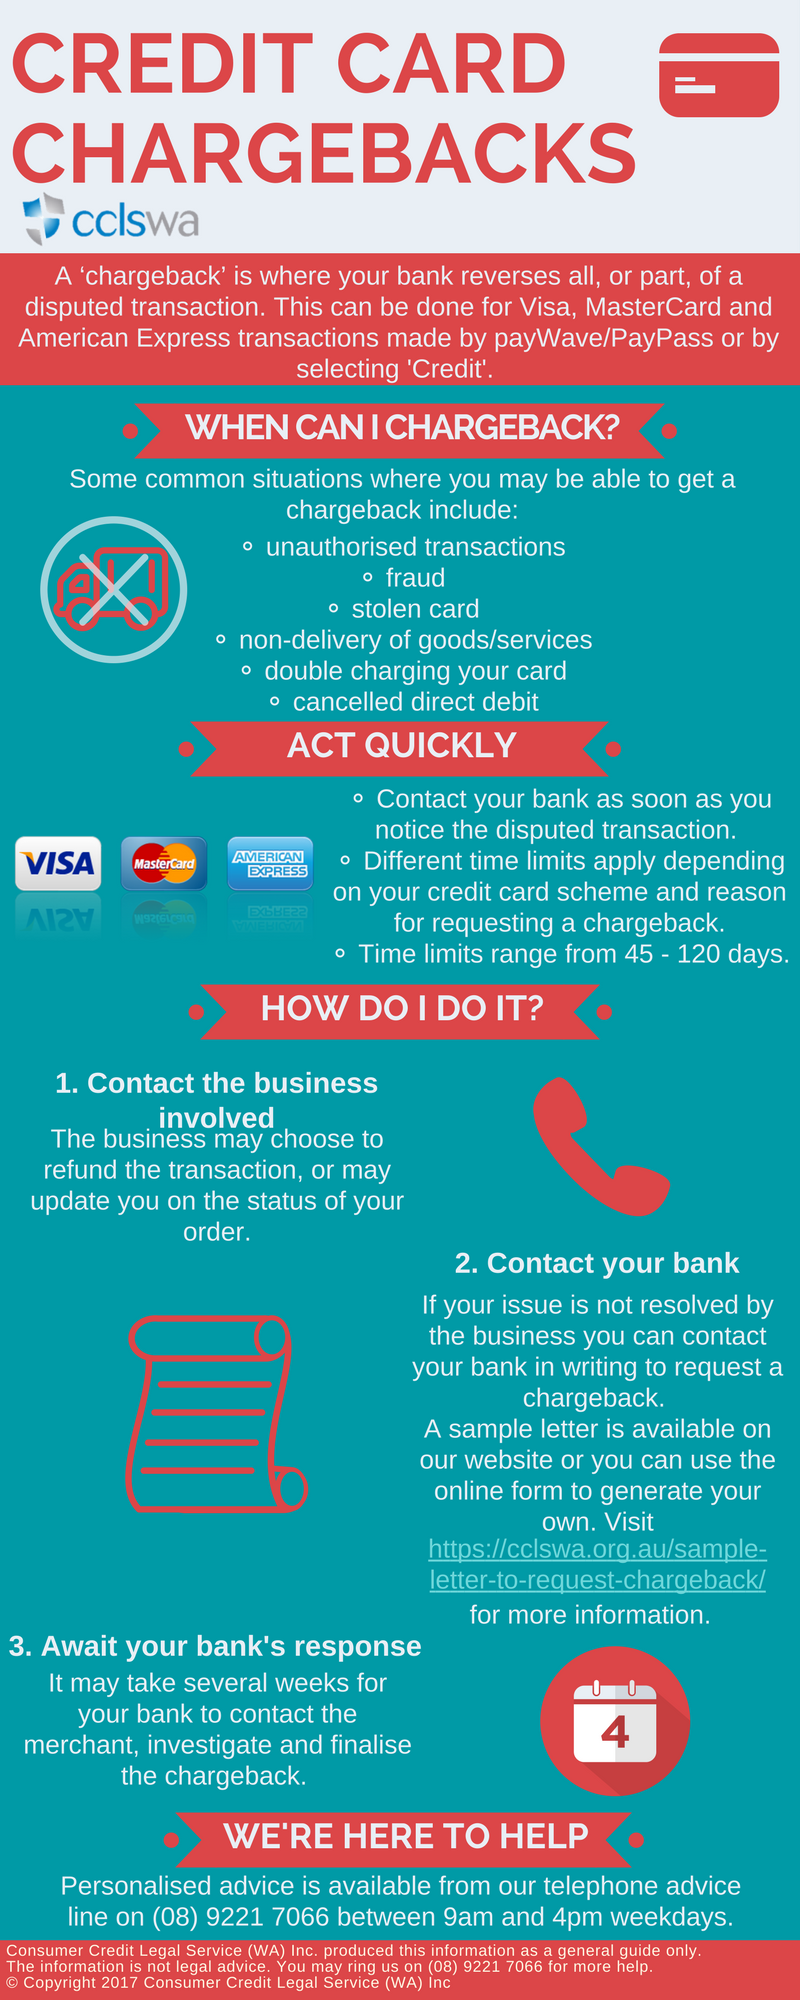 Credit Card Chargeback Infographic